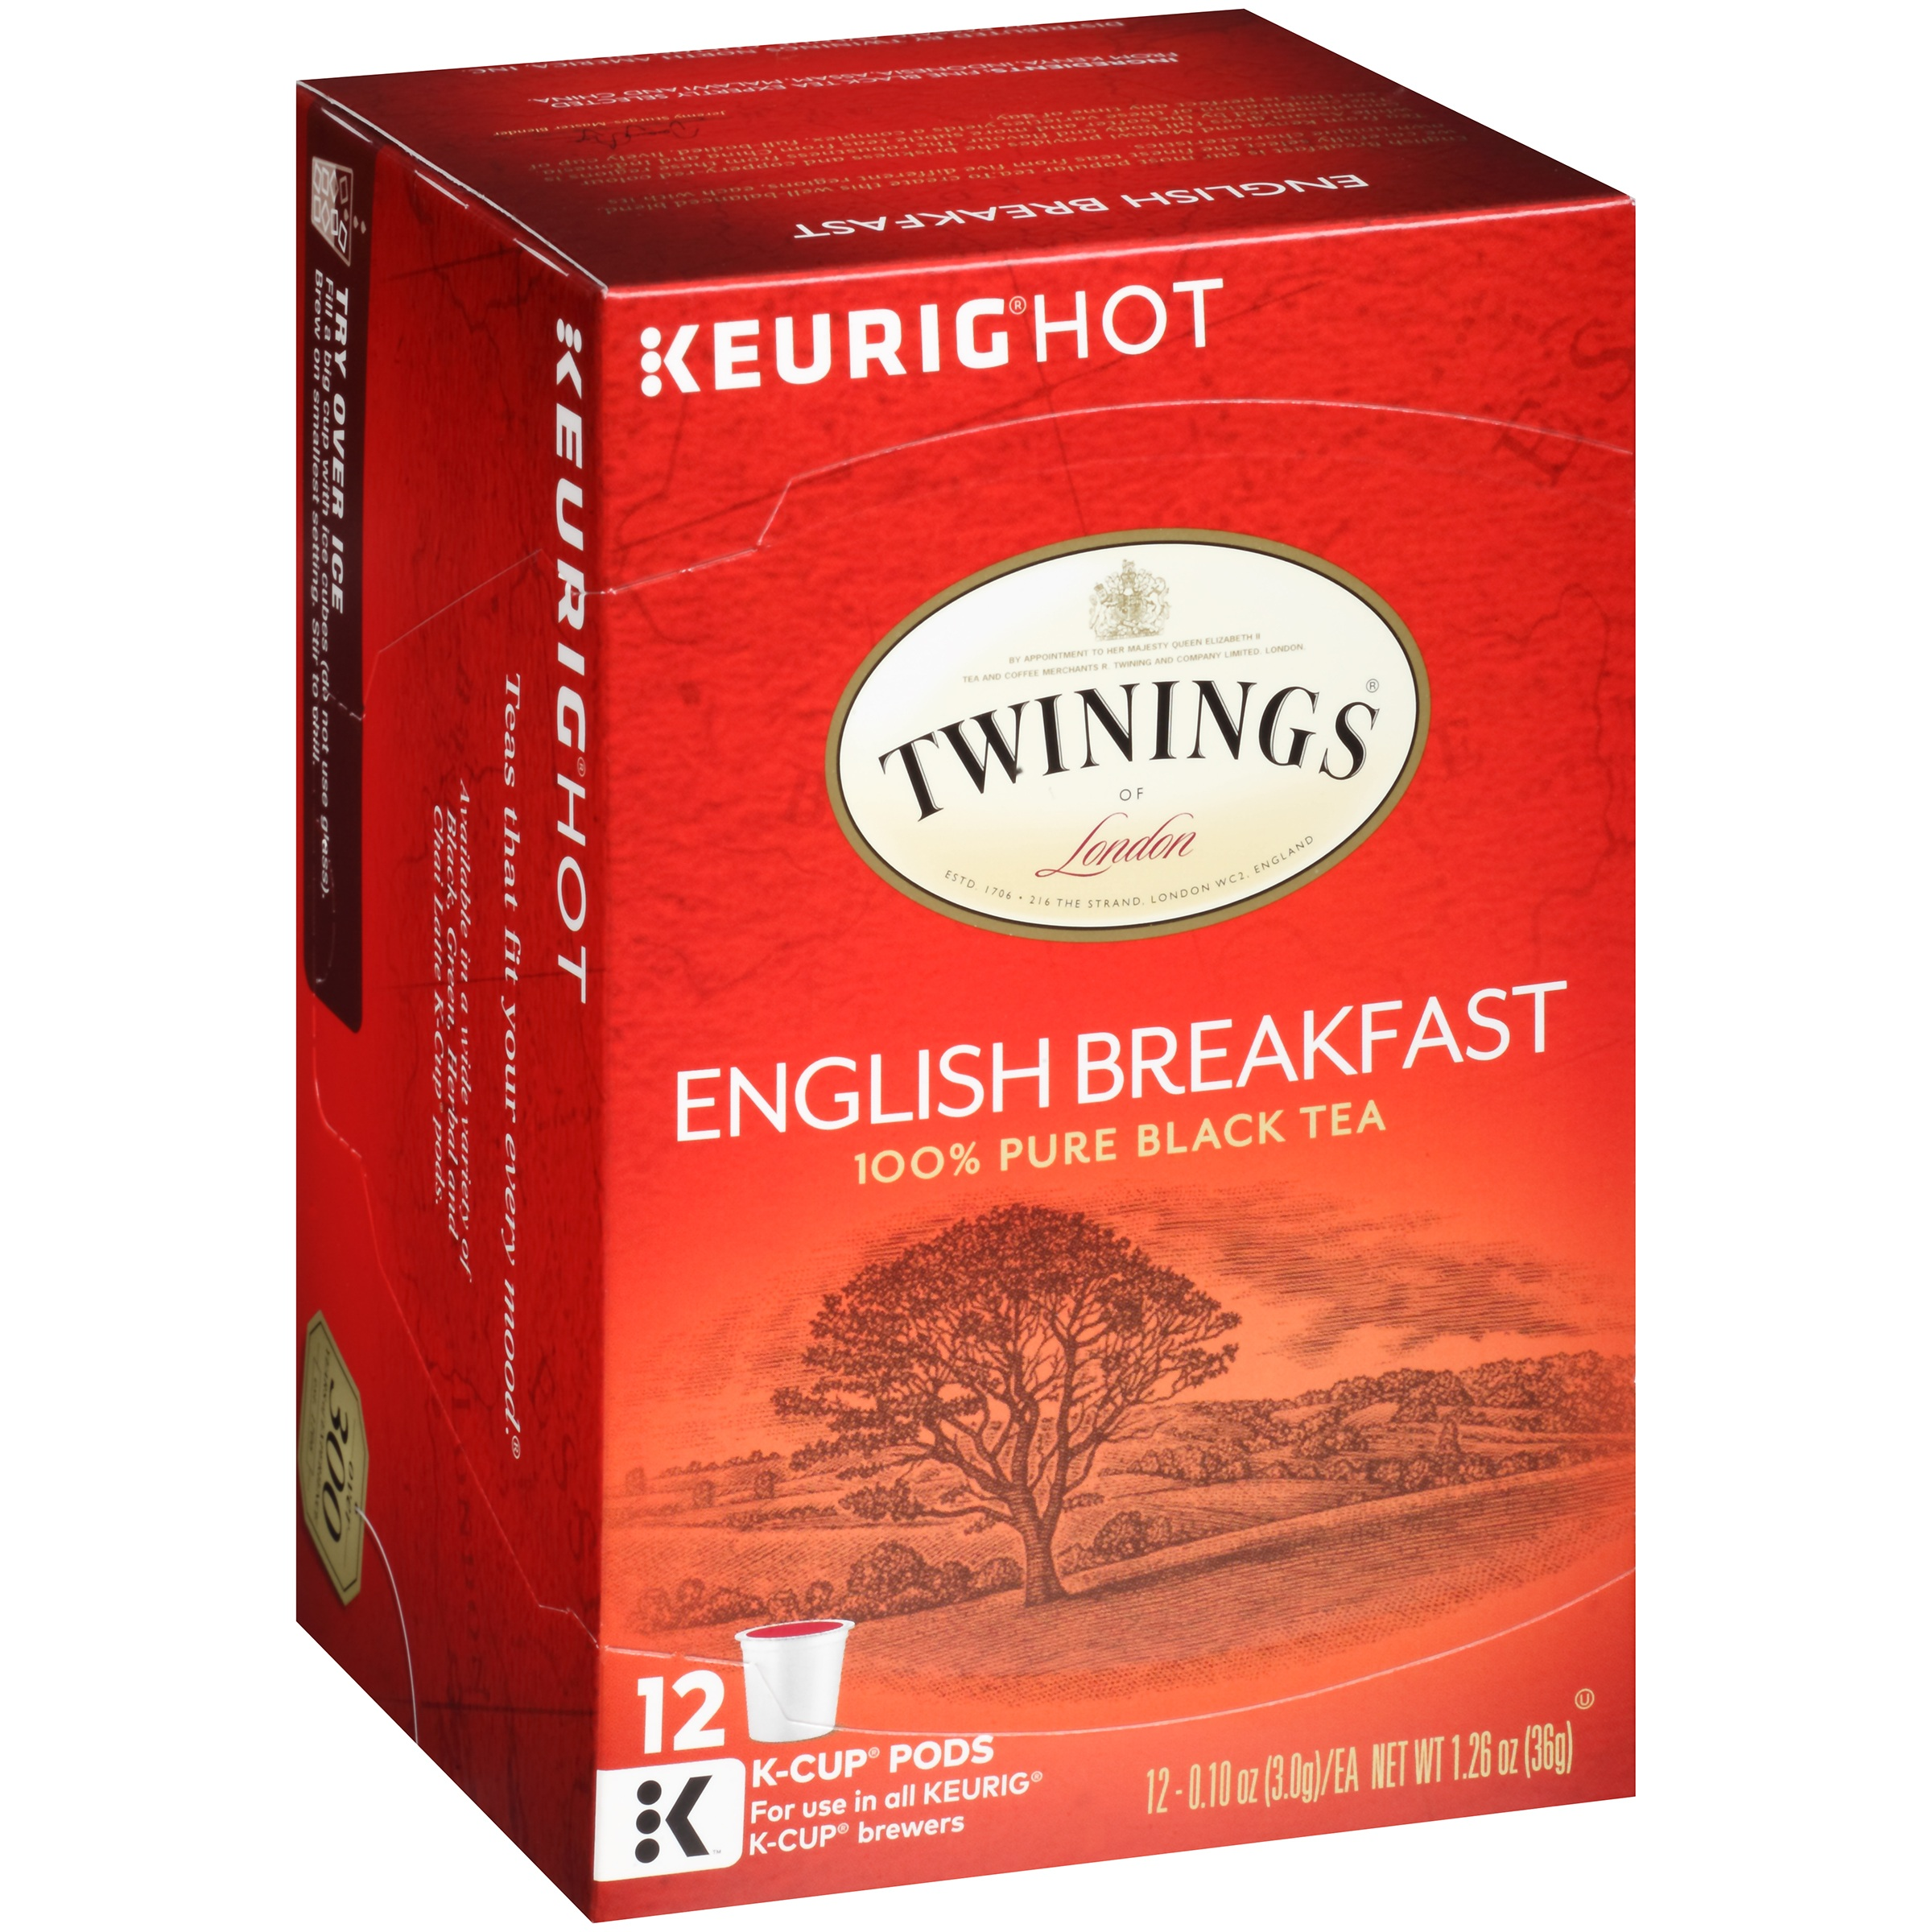 (2 Boxes) Twinings of London English Breakfast Tea Pods, 12 Ct, 1.26 oz. Box